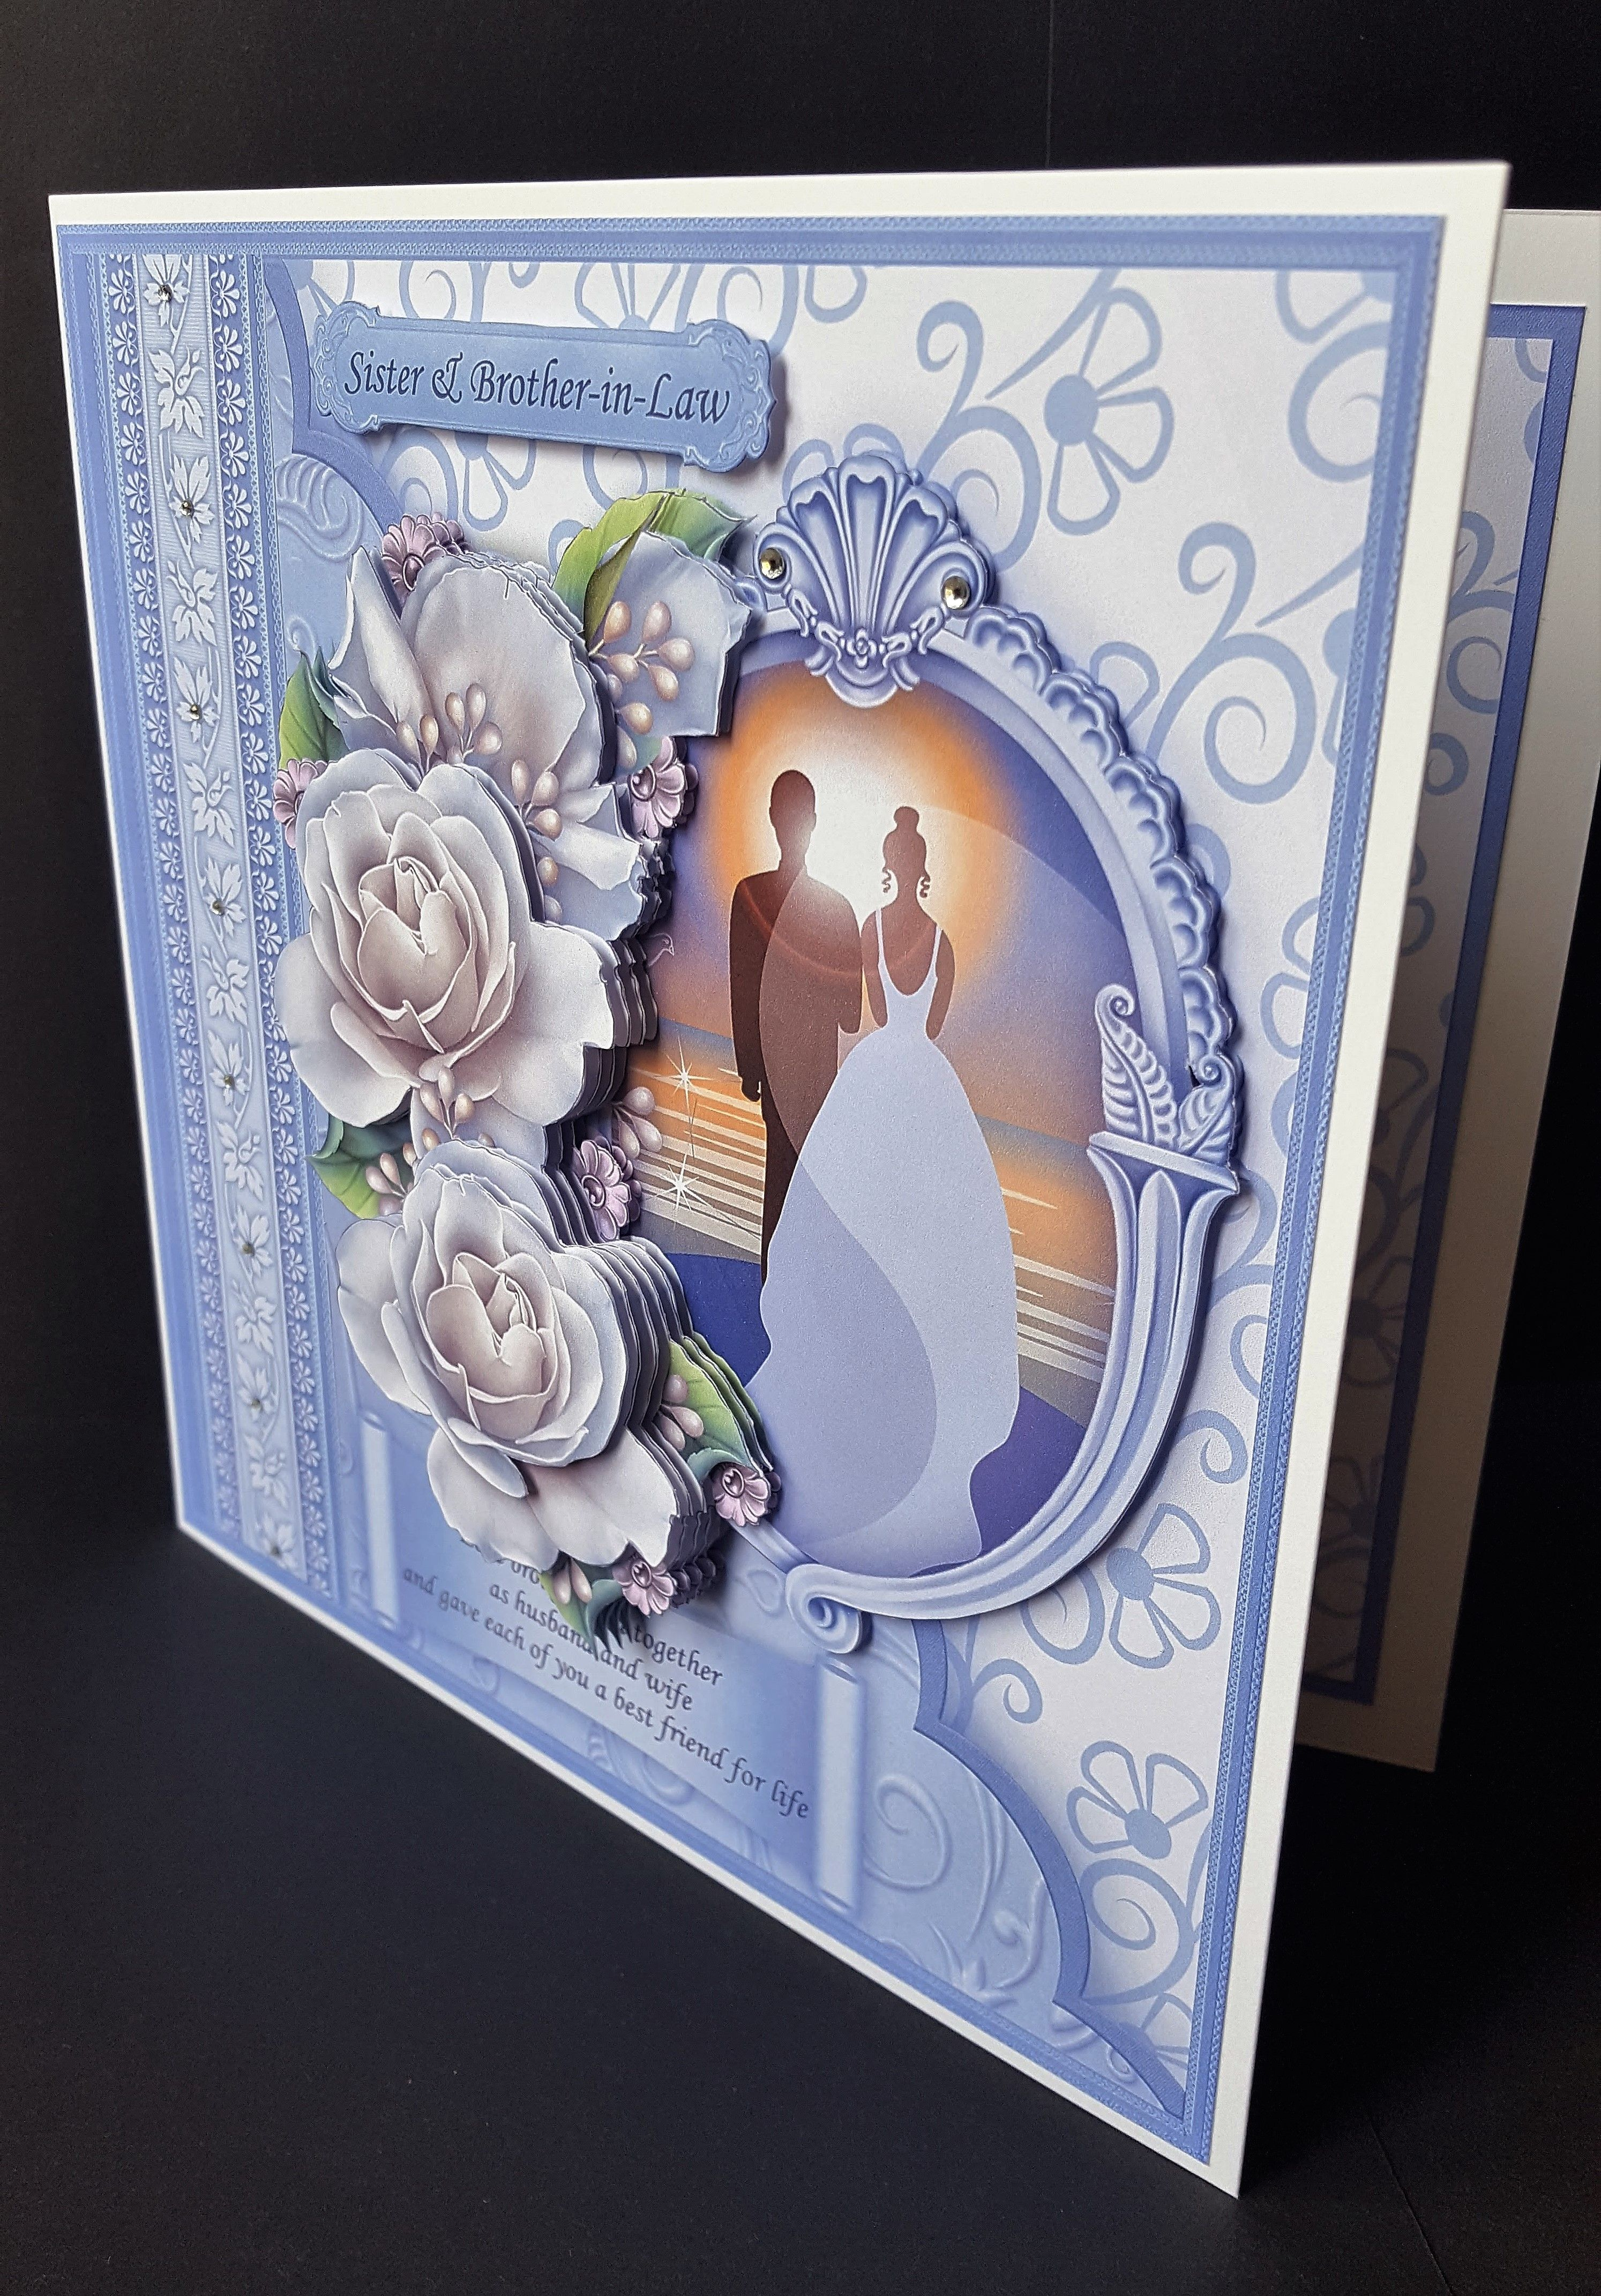 Wedding Anniversary Card Sister Brother In Law Front Handmade By Sheila Jones T Anniversary Cards Anniversary Greeting Cards Wedding Anniversary Cards